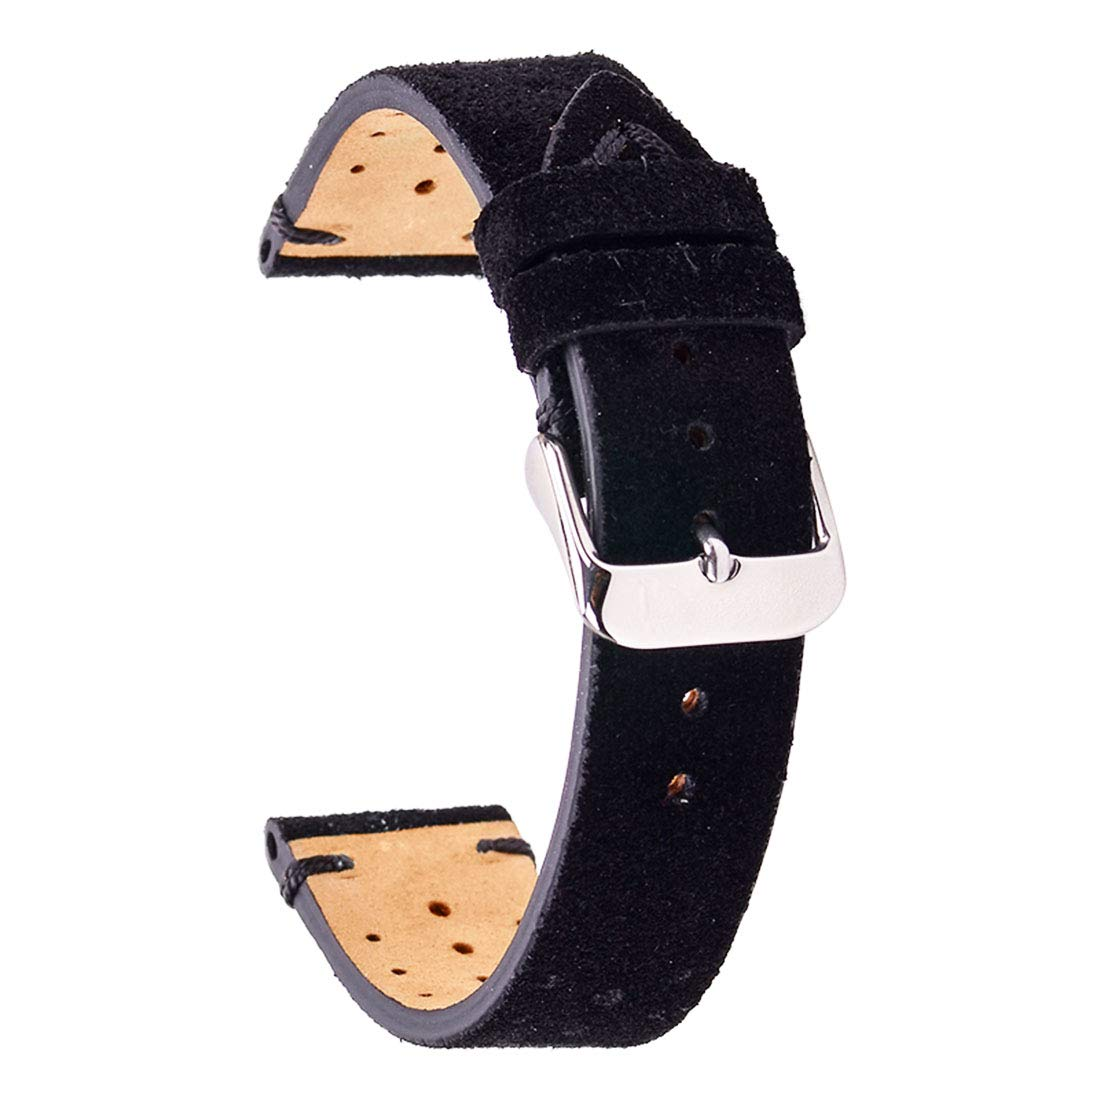 Izasky 18mm 20mm 22mm Watchband - Quick Release Genuine Leather Watchstrap with Stitched Leather Lining Stainless Steel Clasp Buckle (20mm, Black)